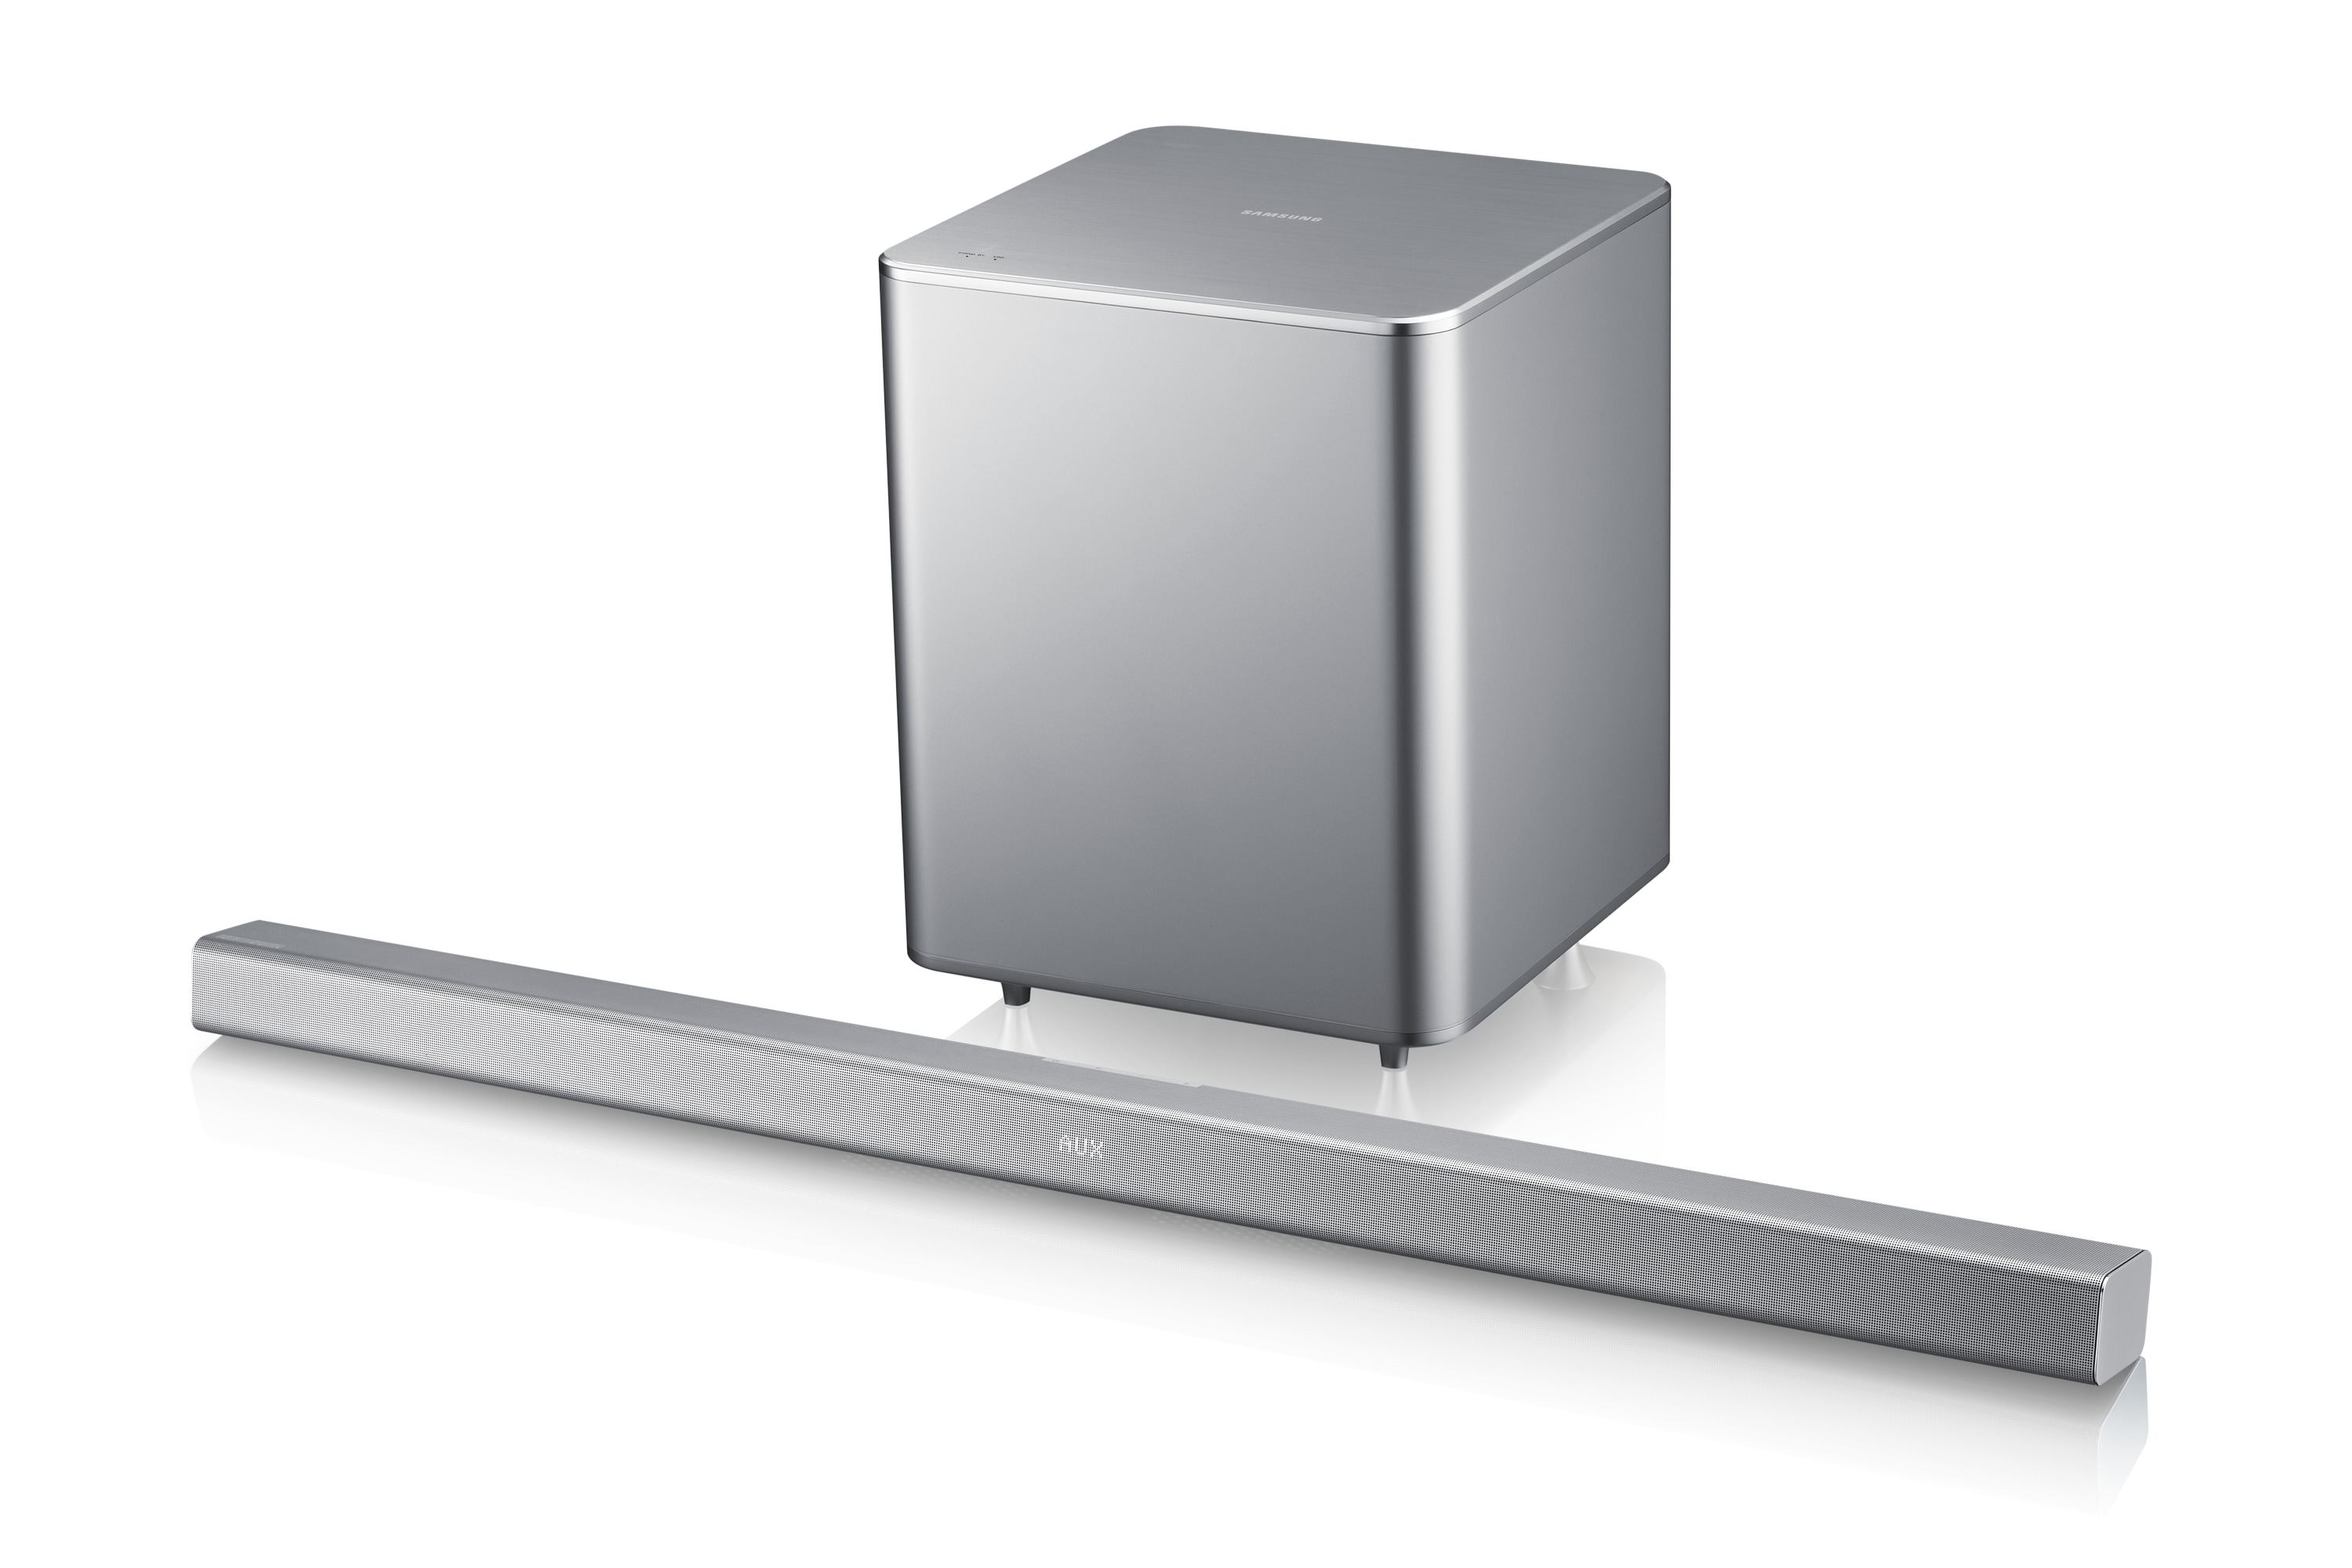 HW-H551 Right-Angle-45-Degree silver